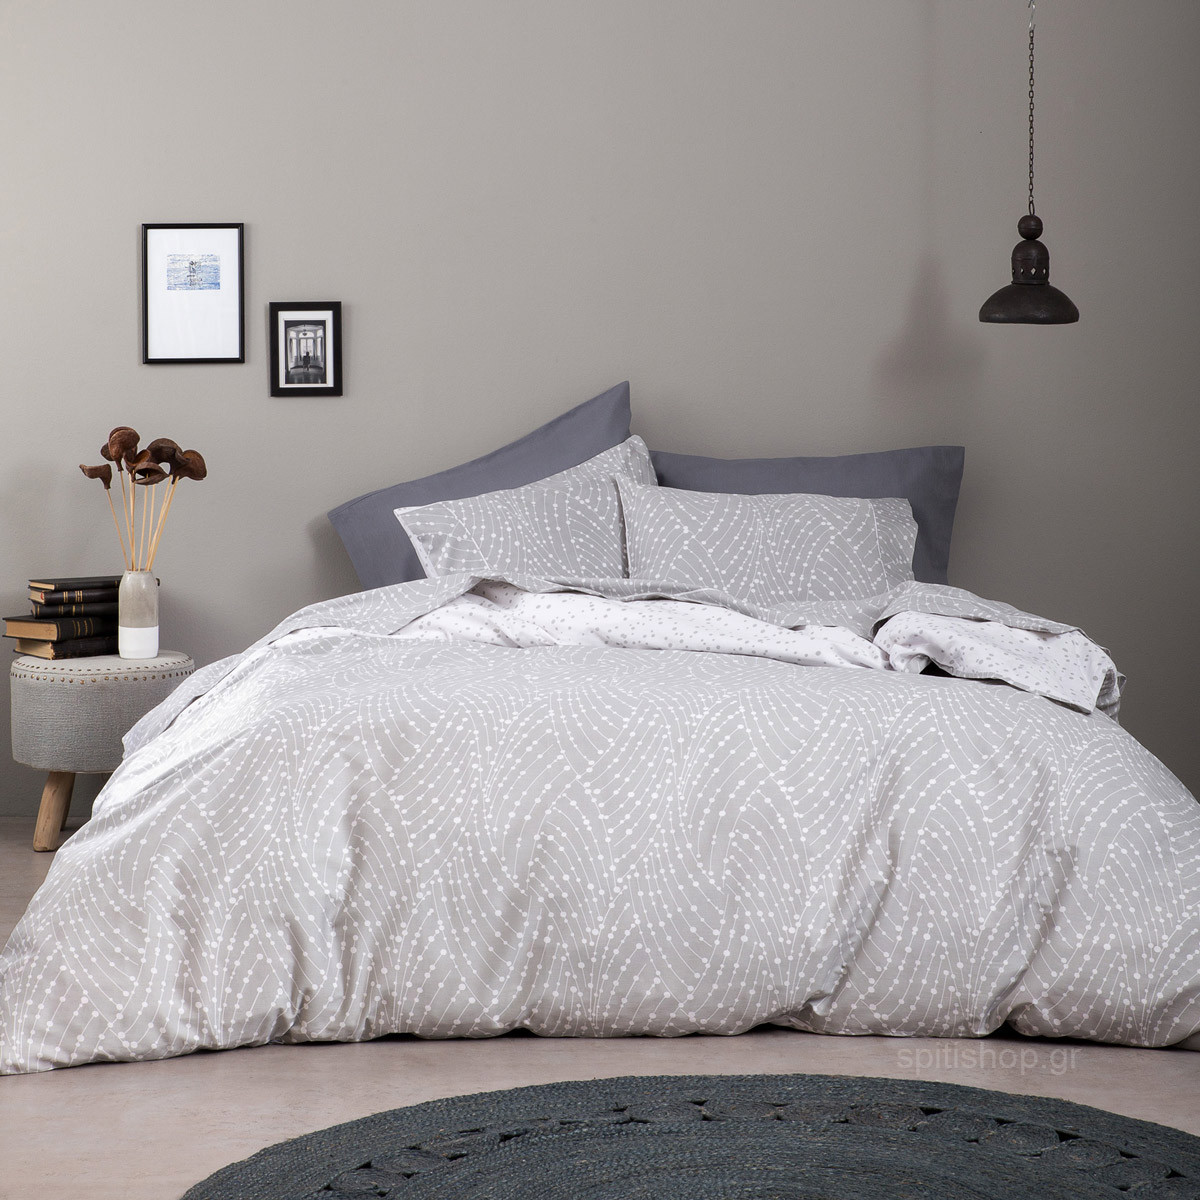 Σεντόνια King Size (Σετ) Nima Bed Linen Allure Grey